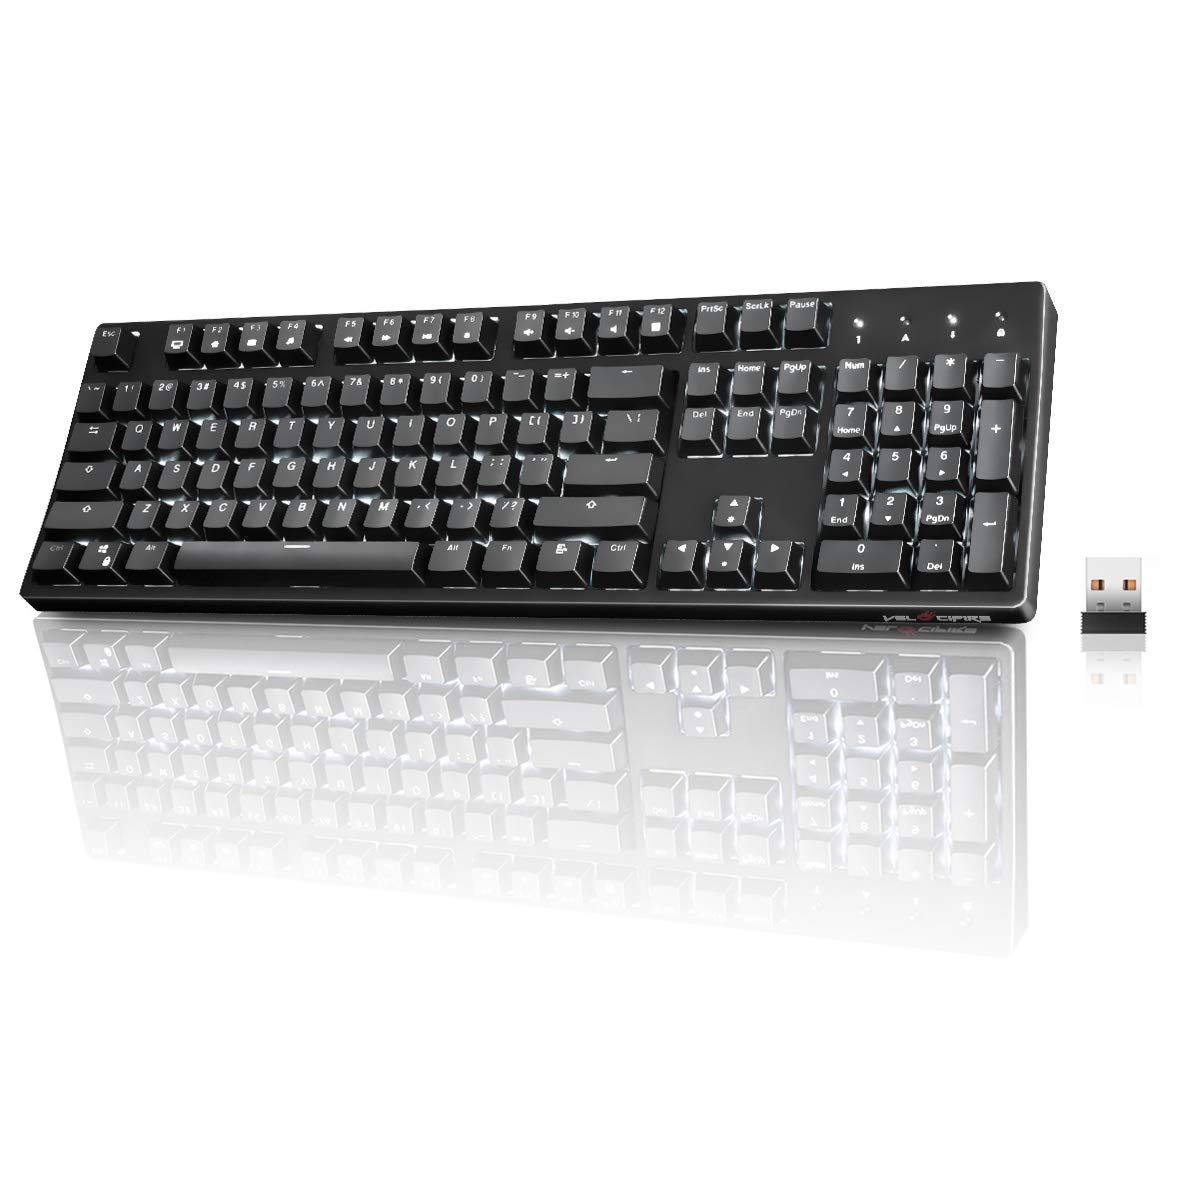 2. Hcman Mechanical Gaming Keyboard